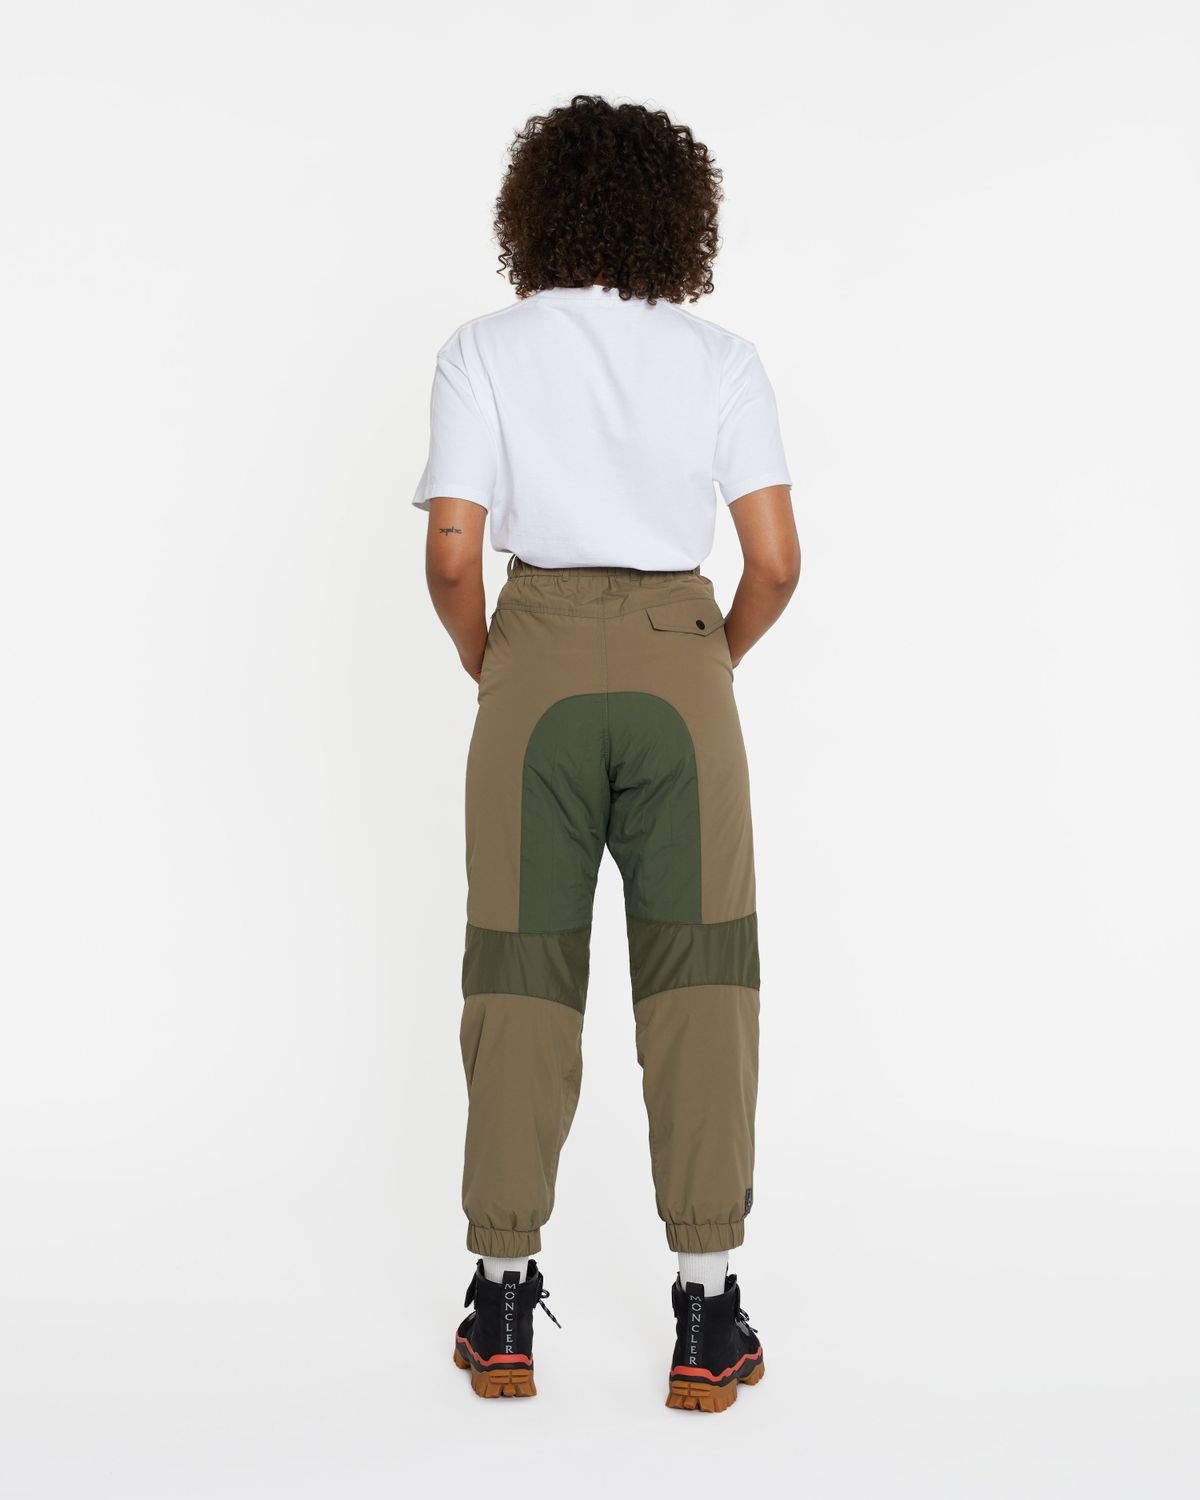 Moncler — Grenoble Recycled Sports Trousers - Image 3